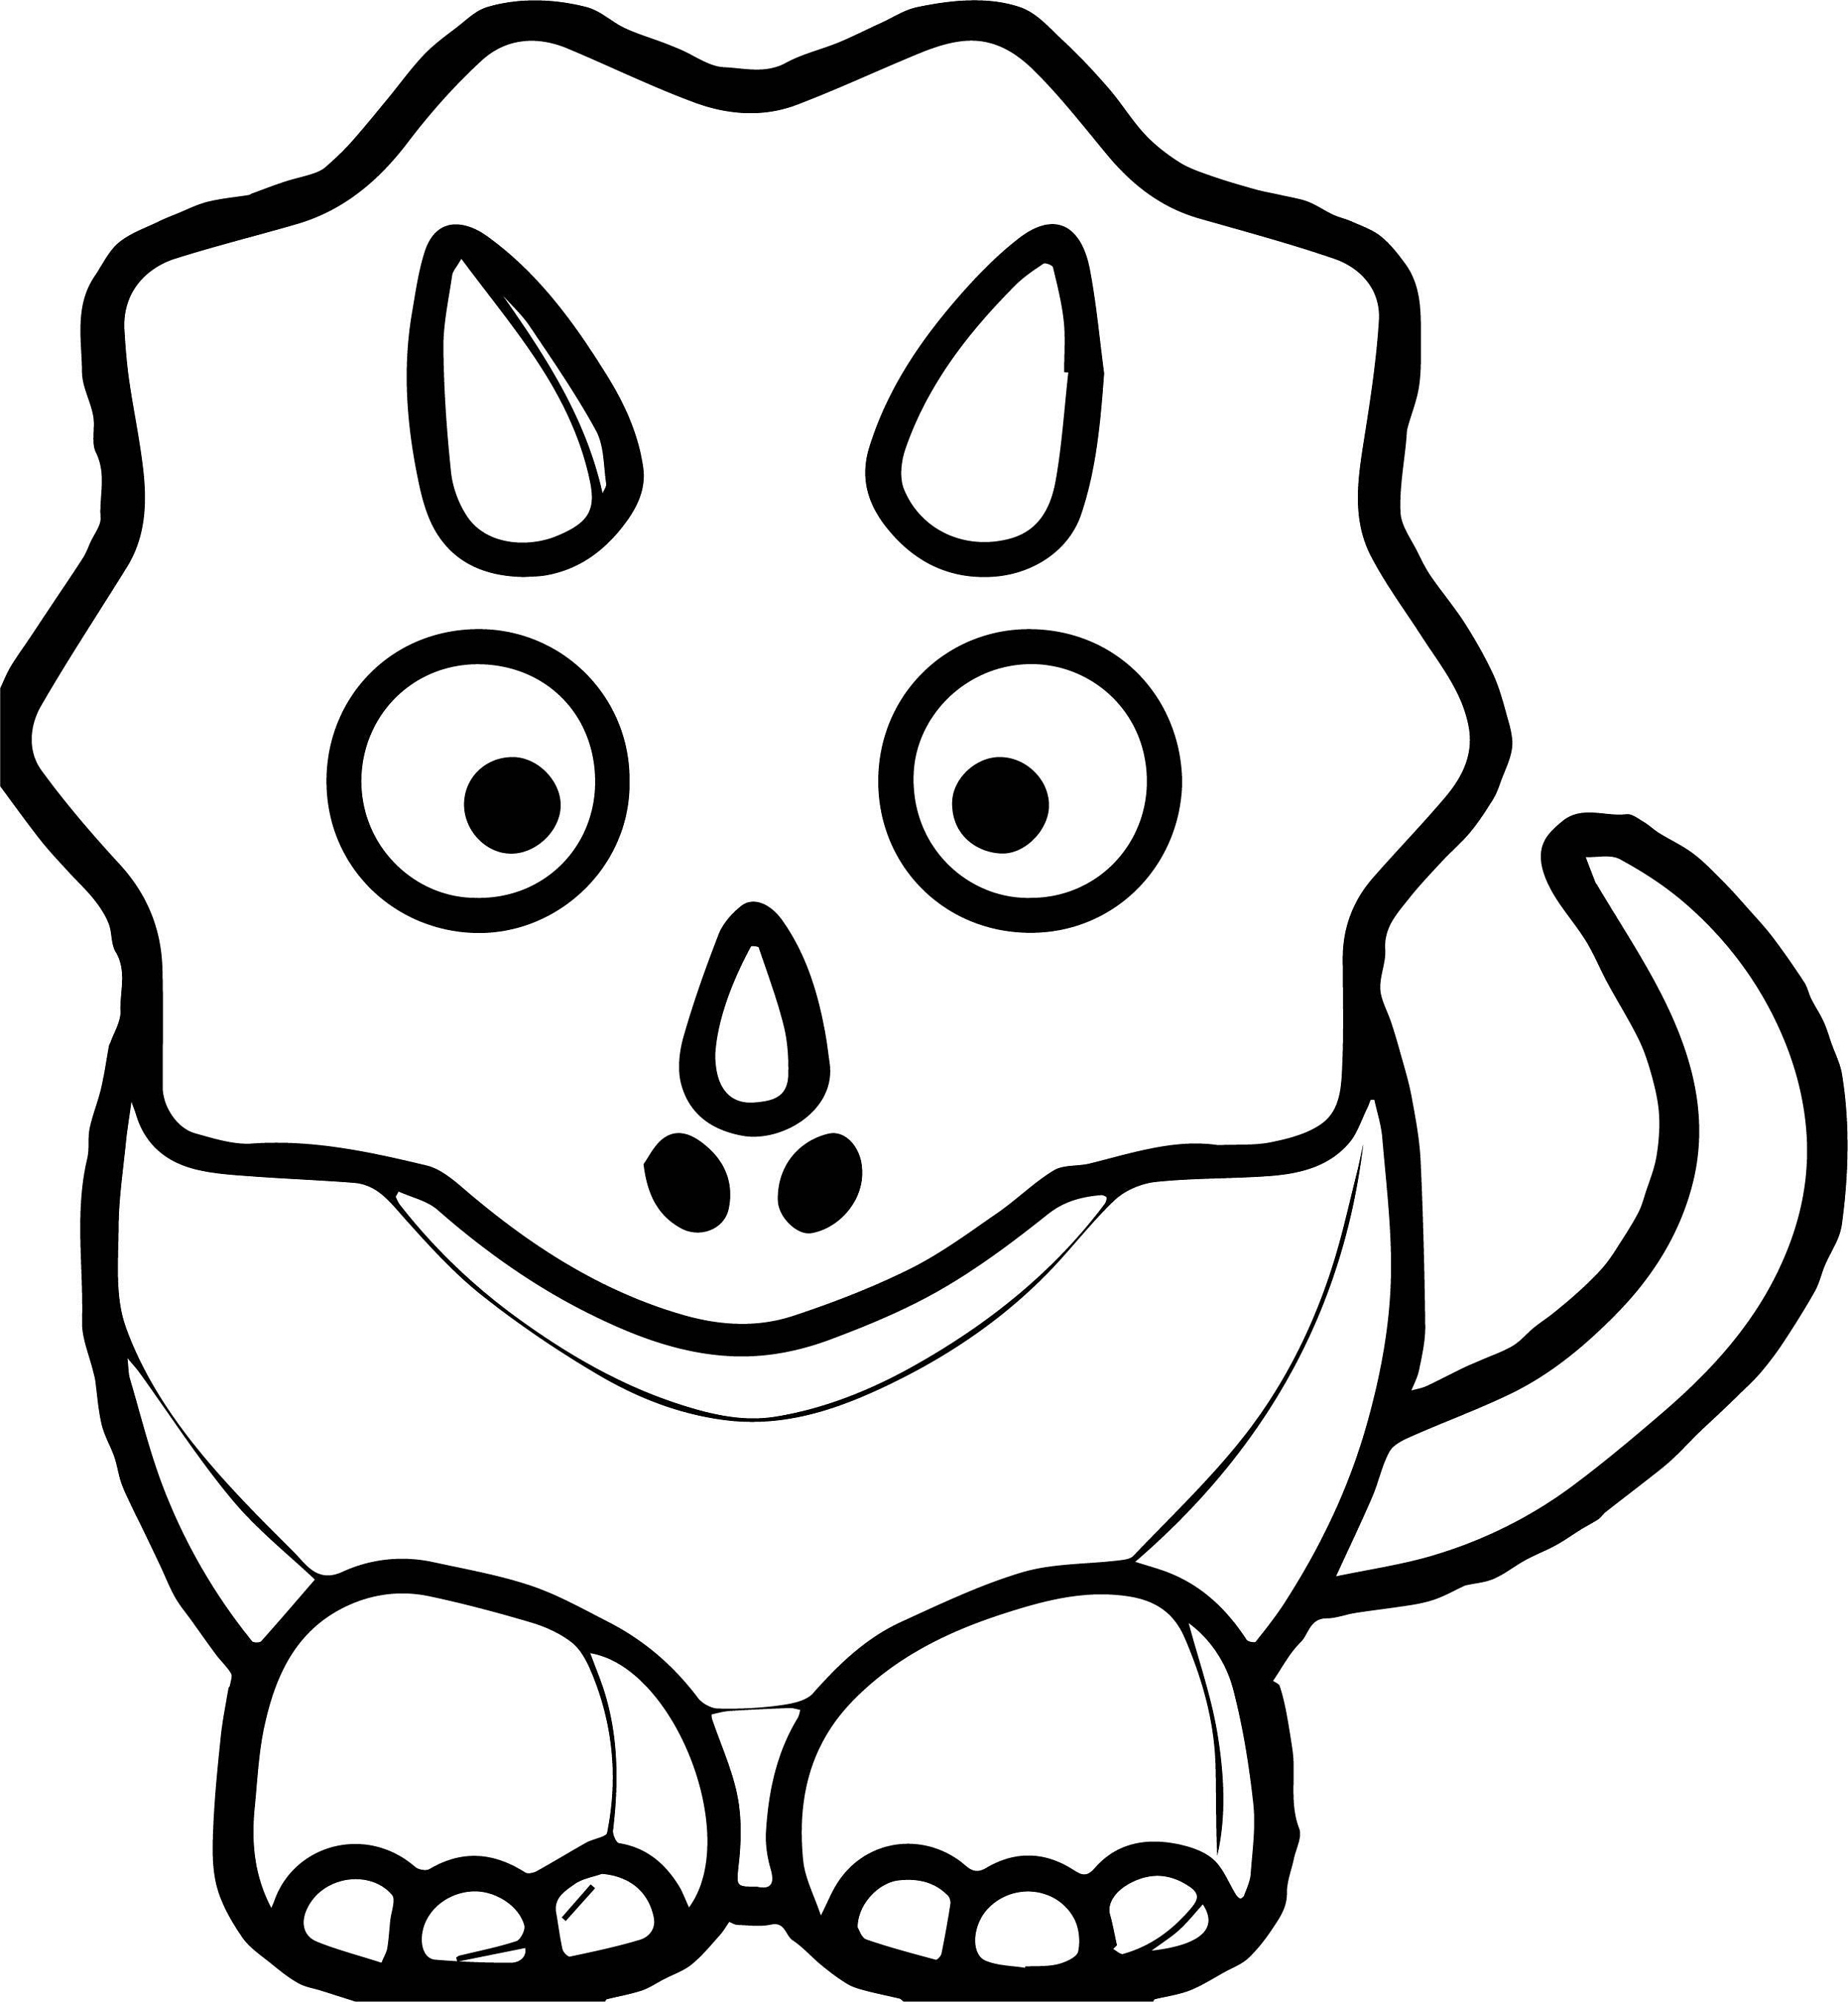 dino coloring pages coloring pages dinosaur free printable coloring pages pages dino coloring